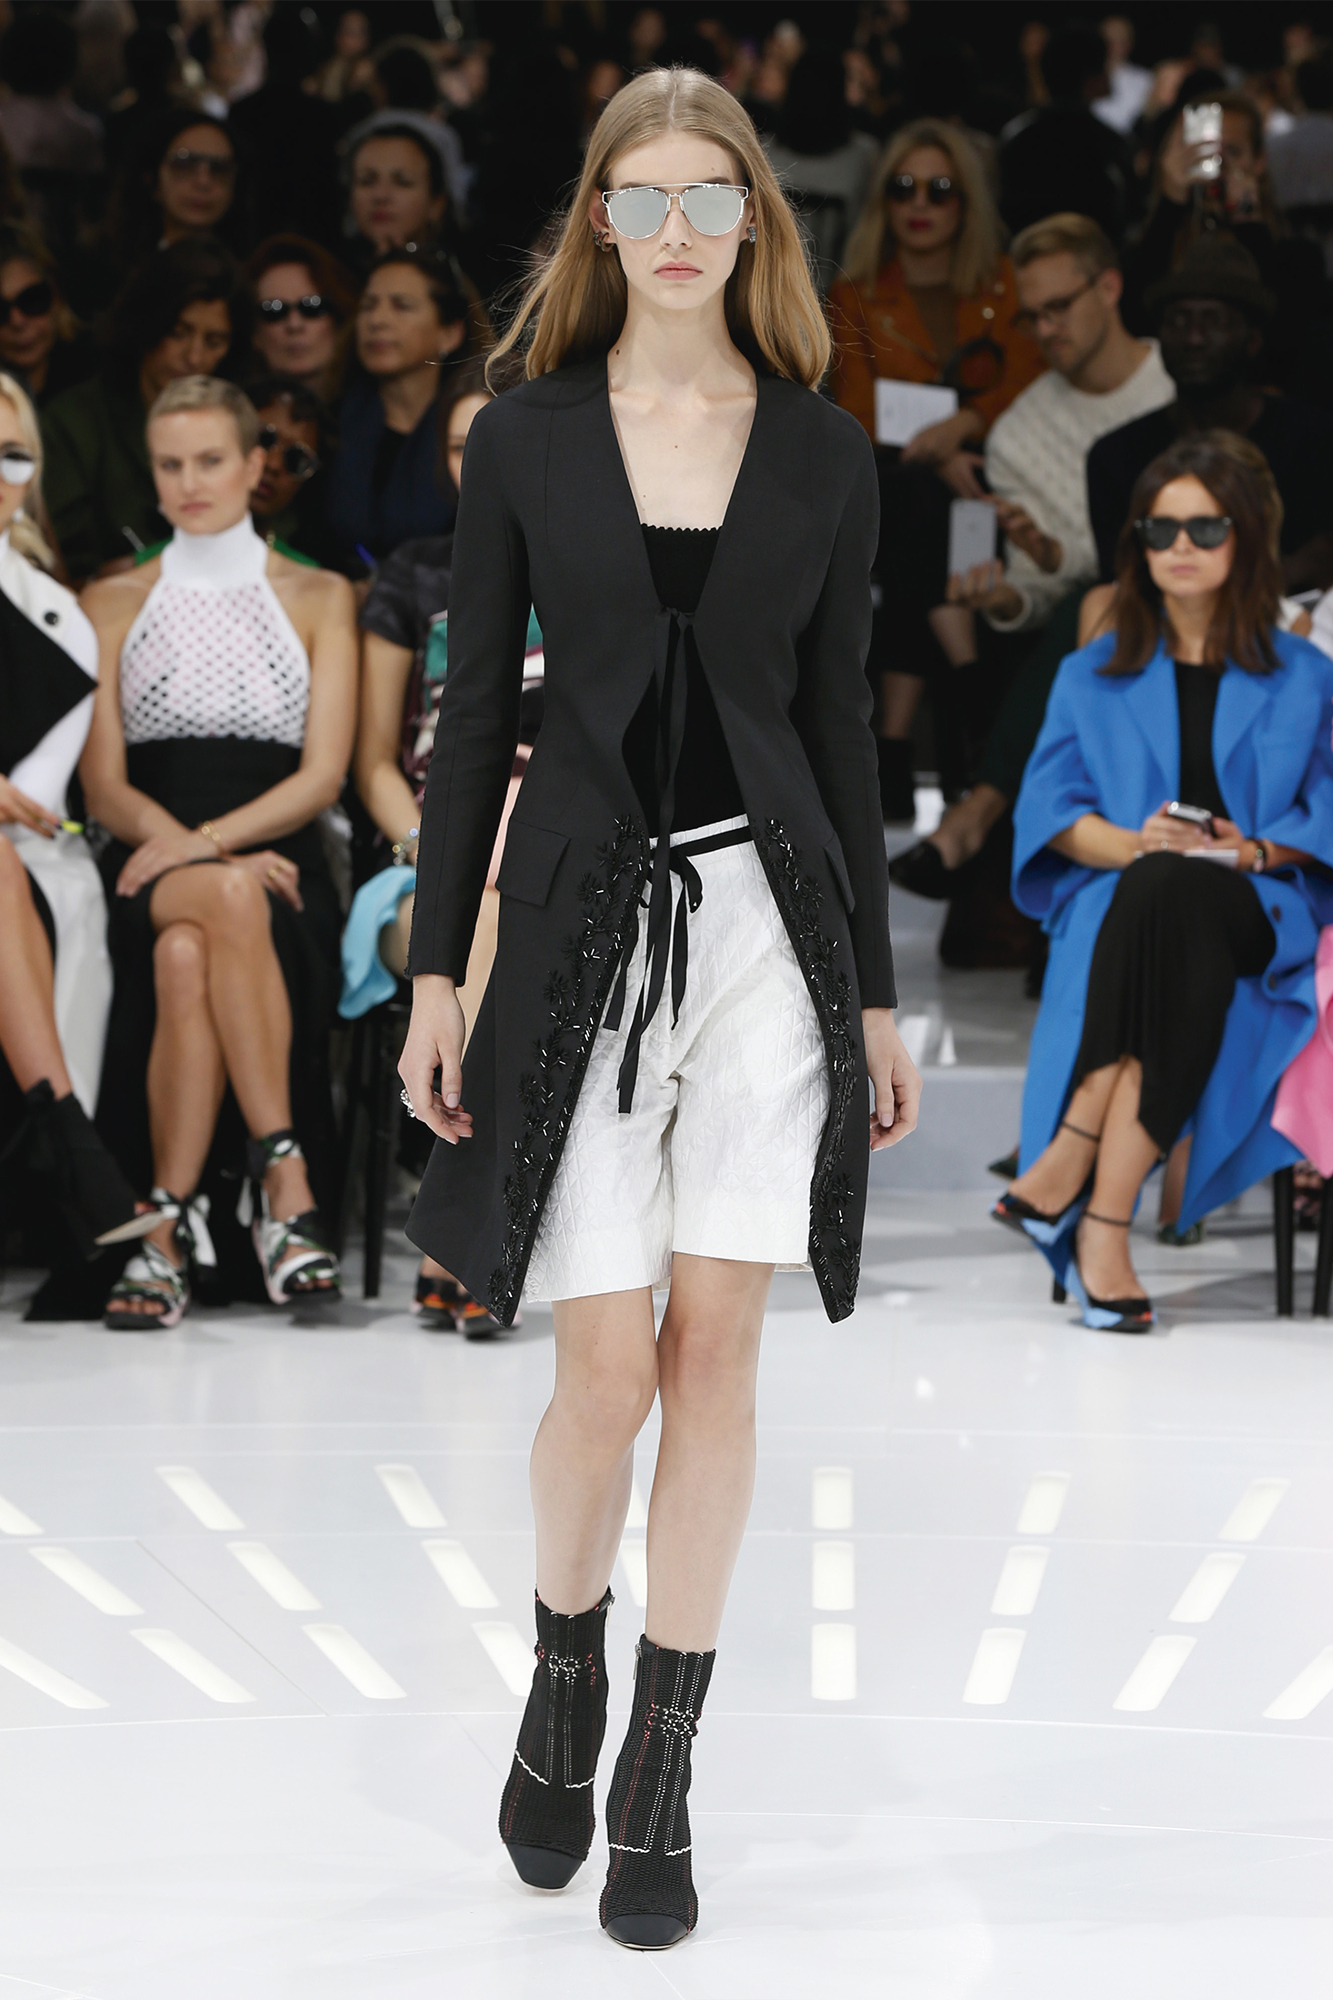 Christian Dior Haute Couture Spring-Summer Ready To Wear Dresses & Accessories Collection 2015-16 (36)